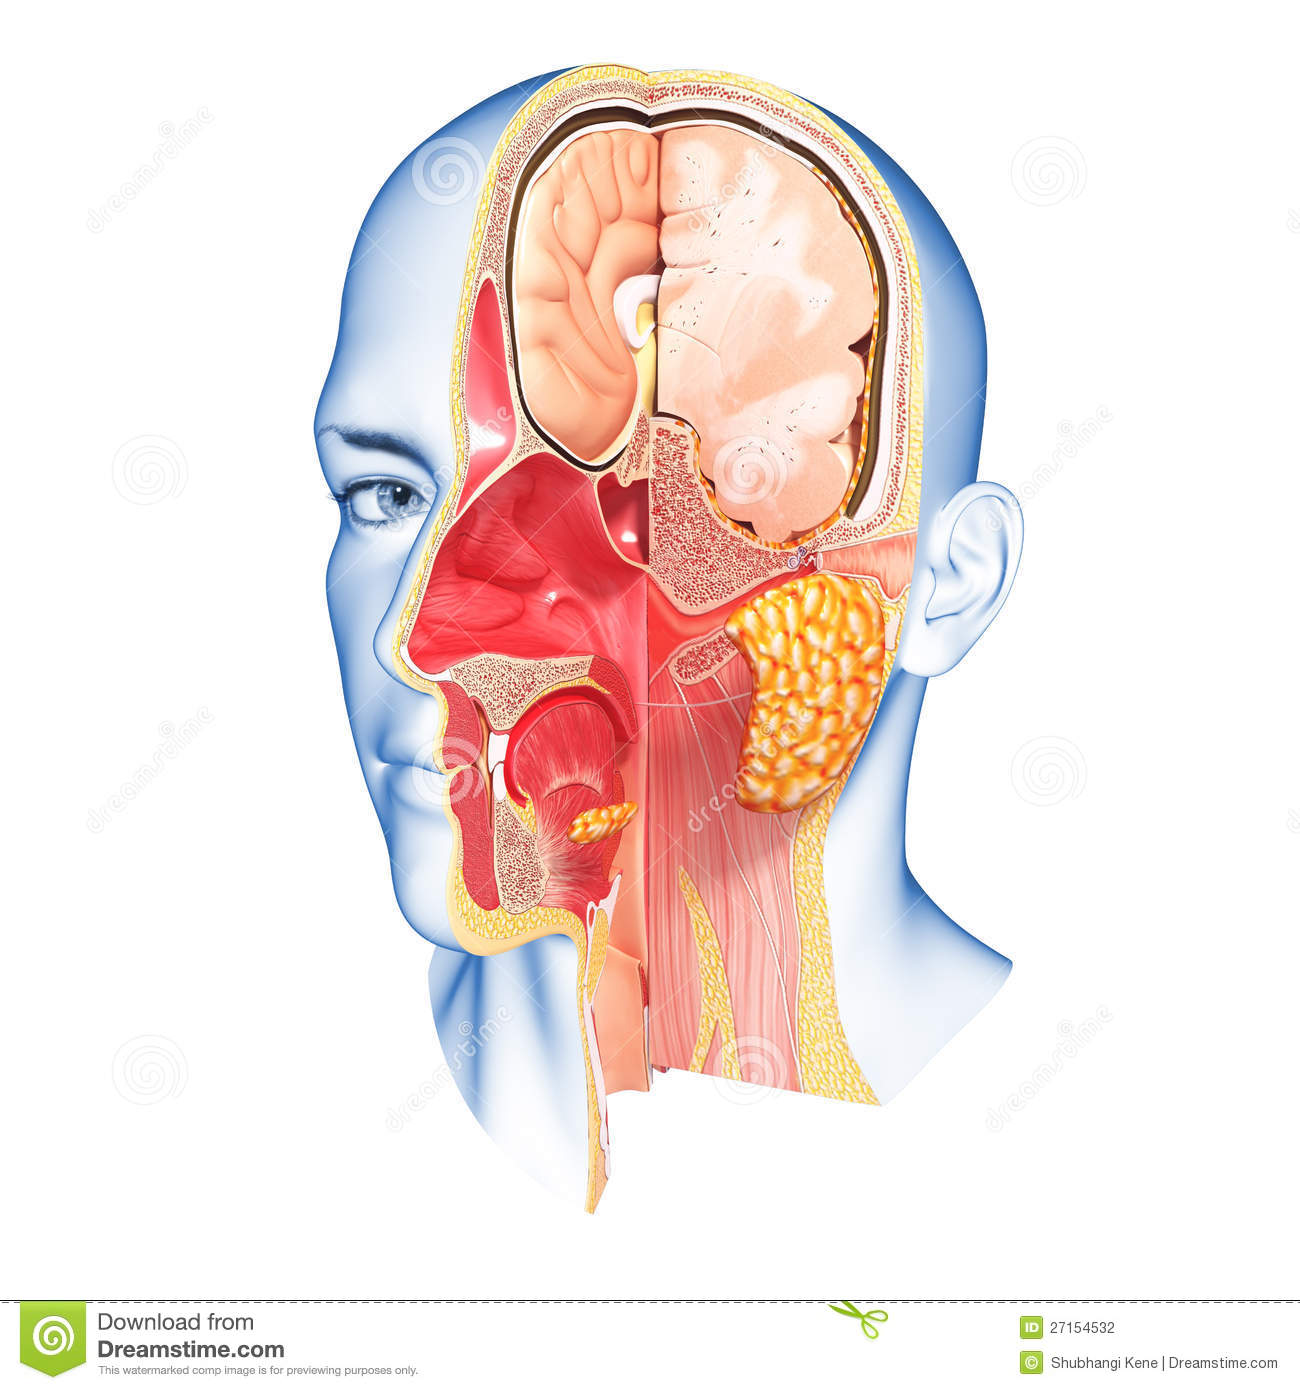 Anatomy Of Face Cross Section Stock Illustration - Illustration of ...